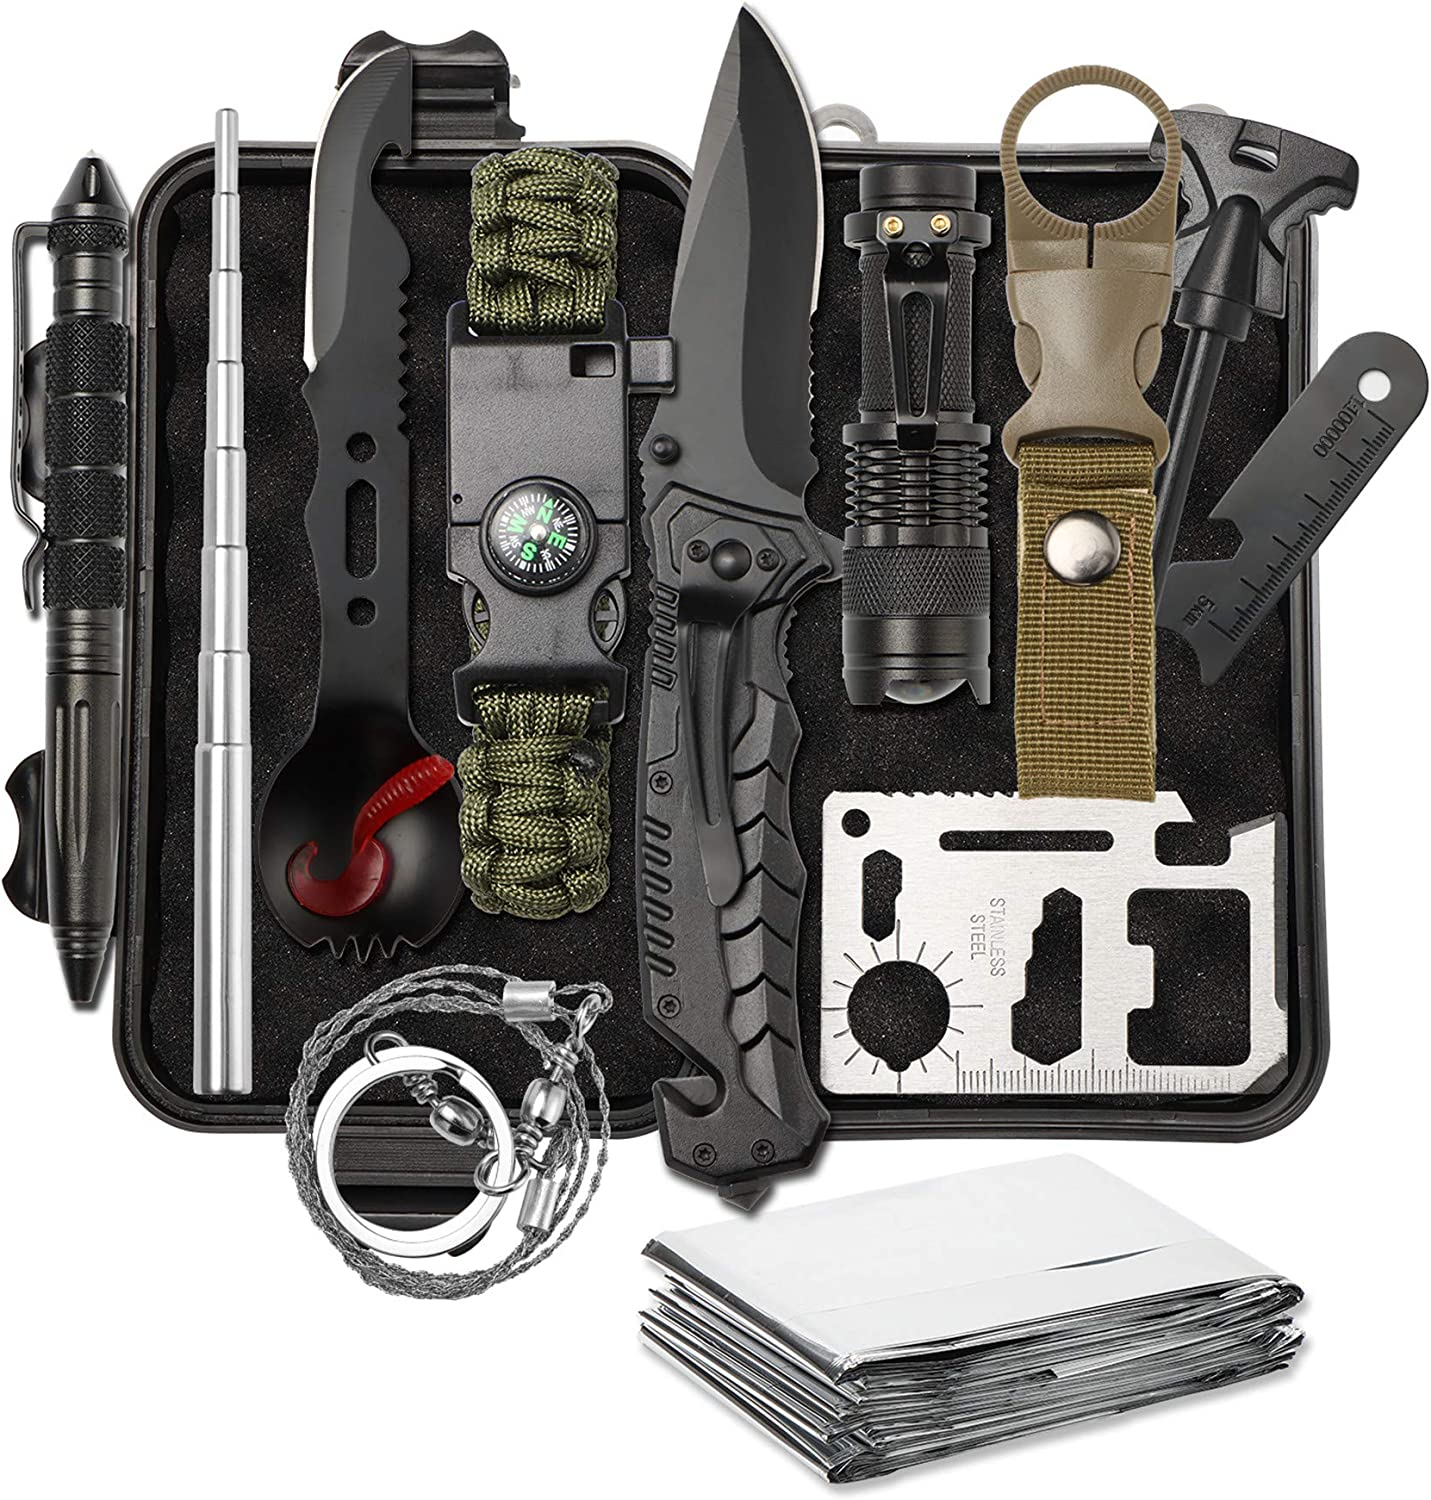 YBLANDEG Survival Gear Kit 13 in 1,Outdoor Emergency Survive Tools Set,Military Tactical Survival Defense Tool for Camping,Hunting,Hiking,Cars,Fishing